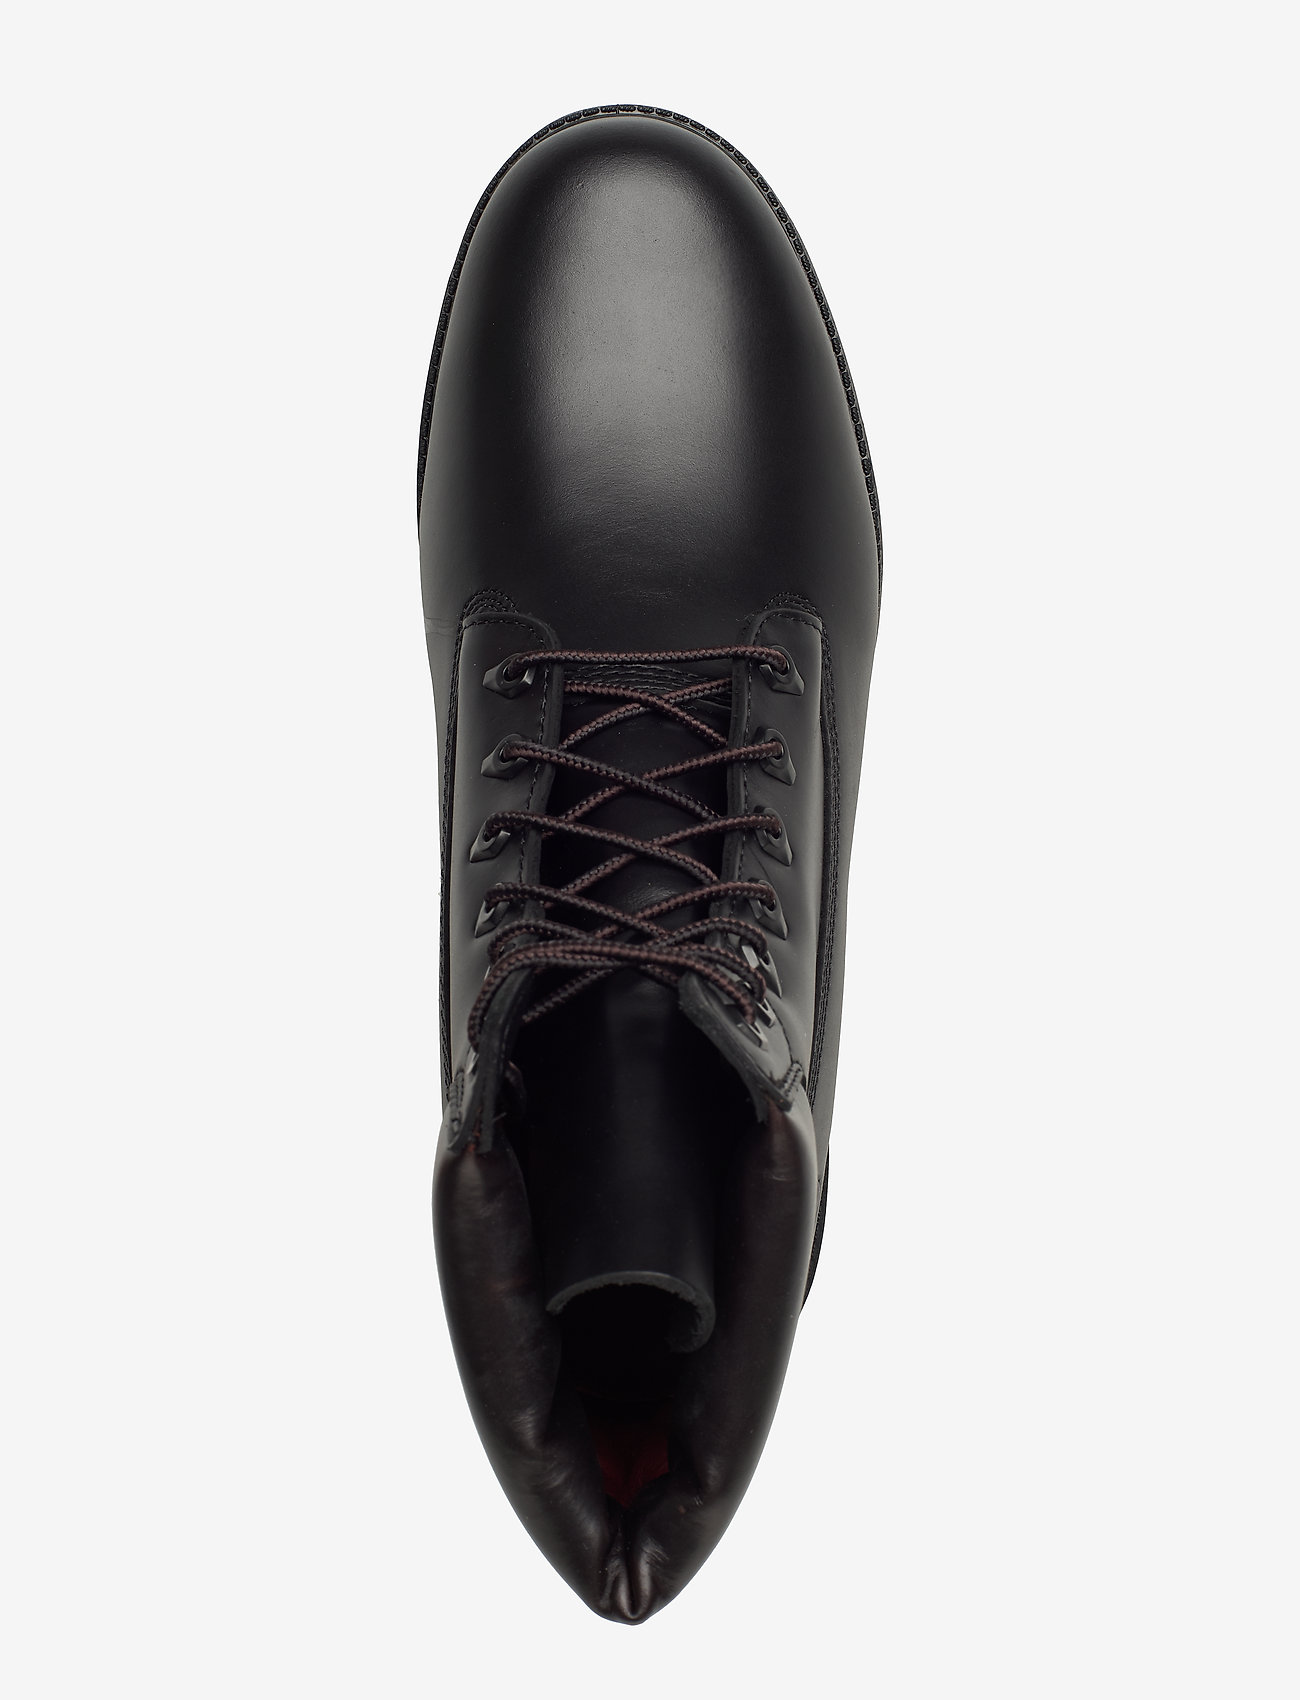 6 Inch Heritage Boot (Jet Black) - Timberland a0Cwg8